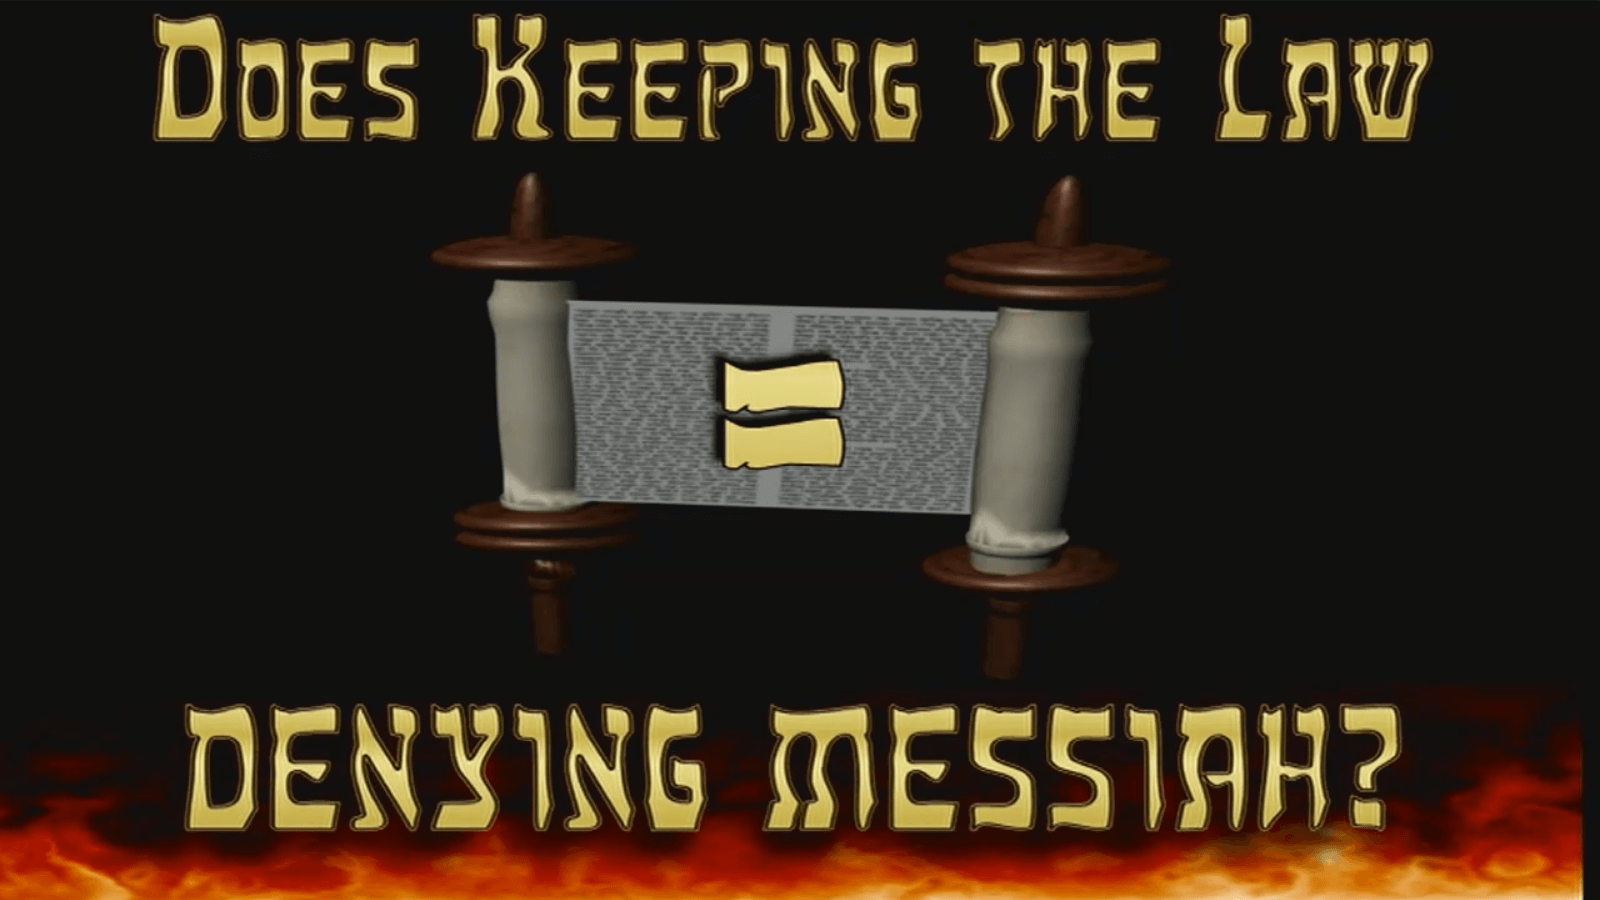 Does Keeping the Law = Denying Messiah?